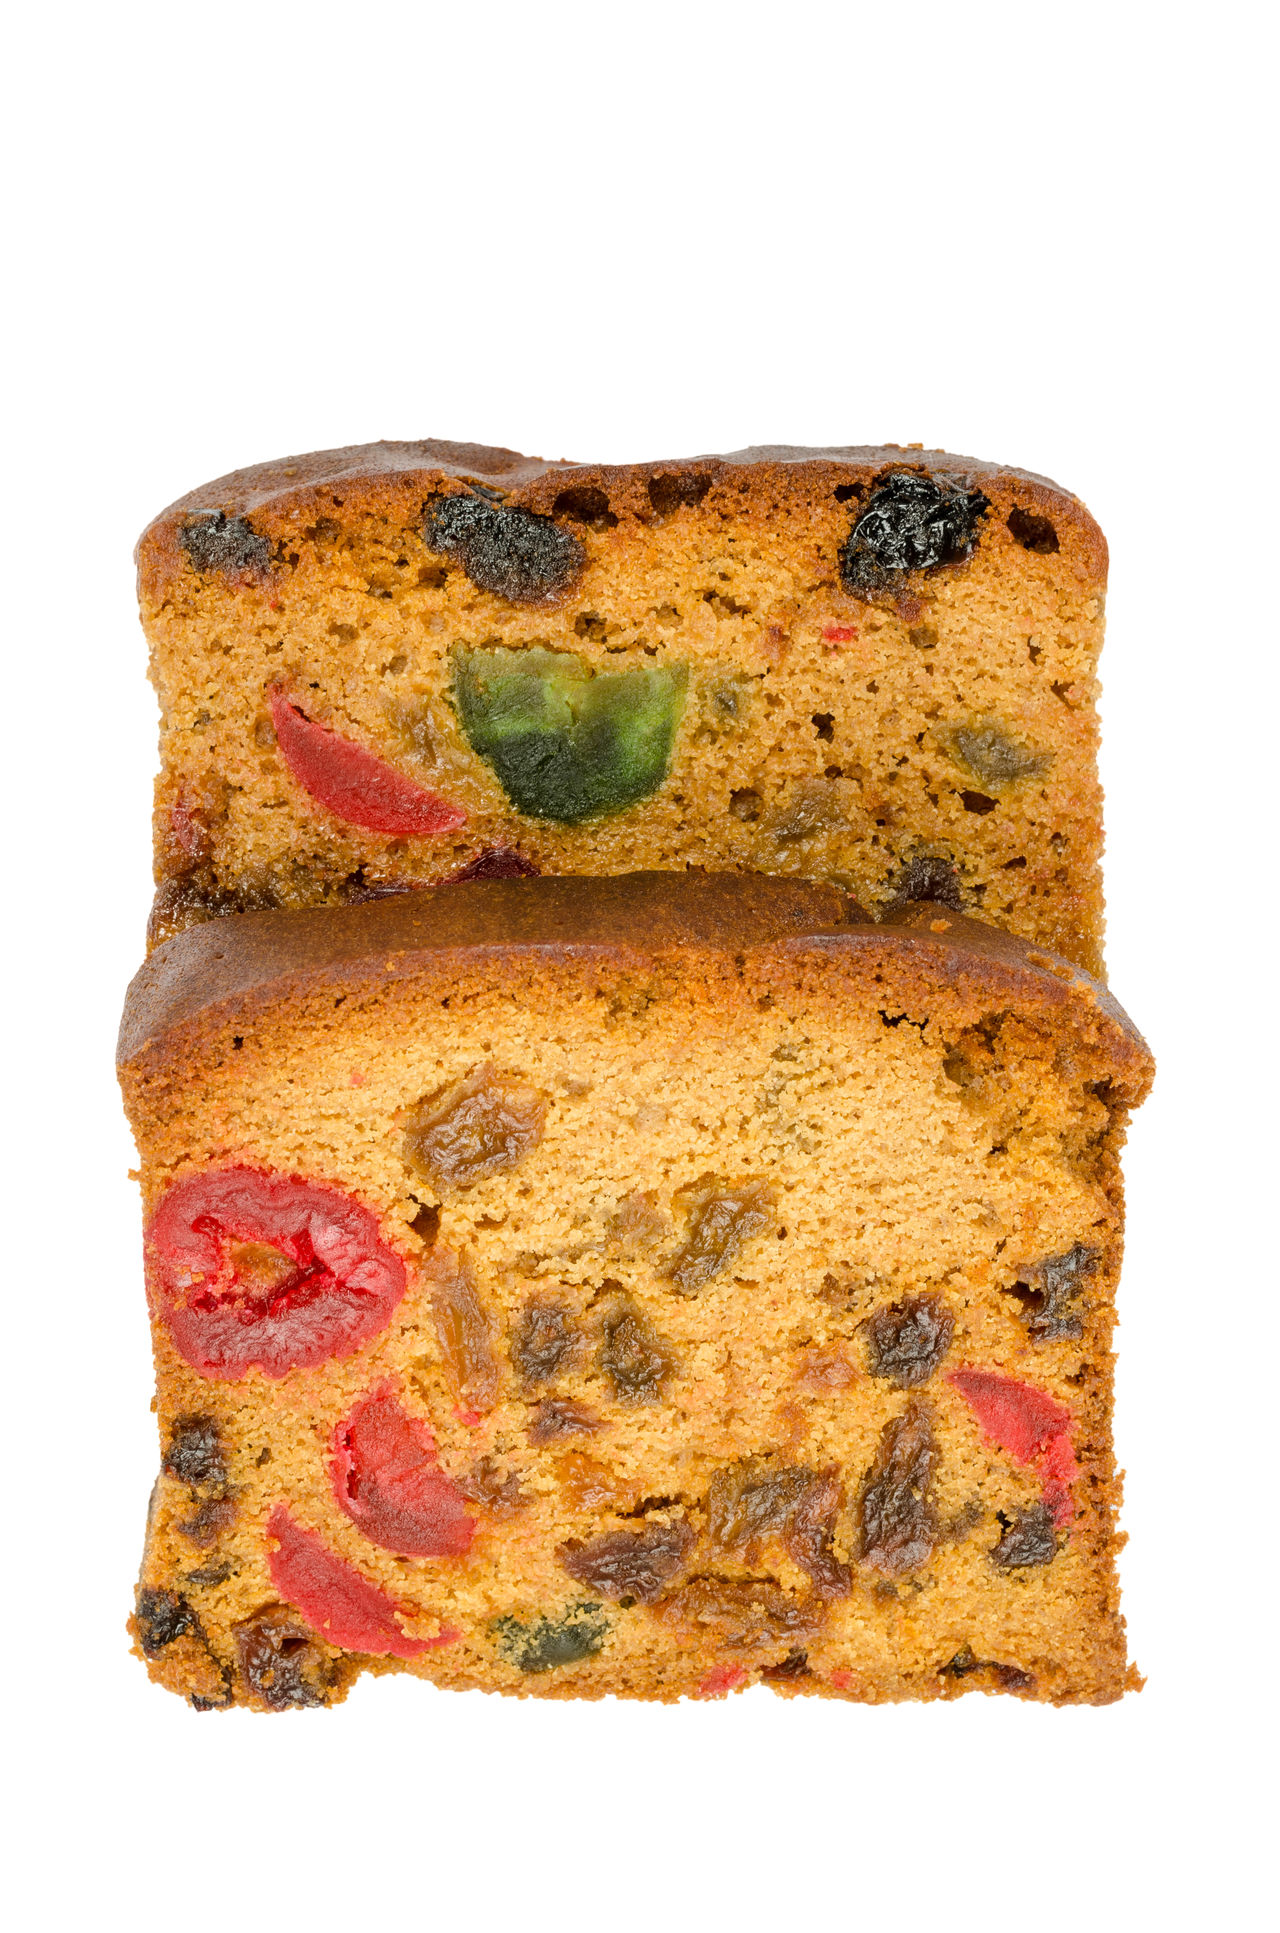 delicious sliced fruit cake with mixed fruit and cherries isolated on white background Baked Brown Color Candied Cherries Cut Delicious Food Dessert Freshness Fruitcake Isolated White Background Mixed No People Nutritious Food Pieces Raisins With Fruit Sliced Square Sugary Sultanas Tasty